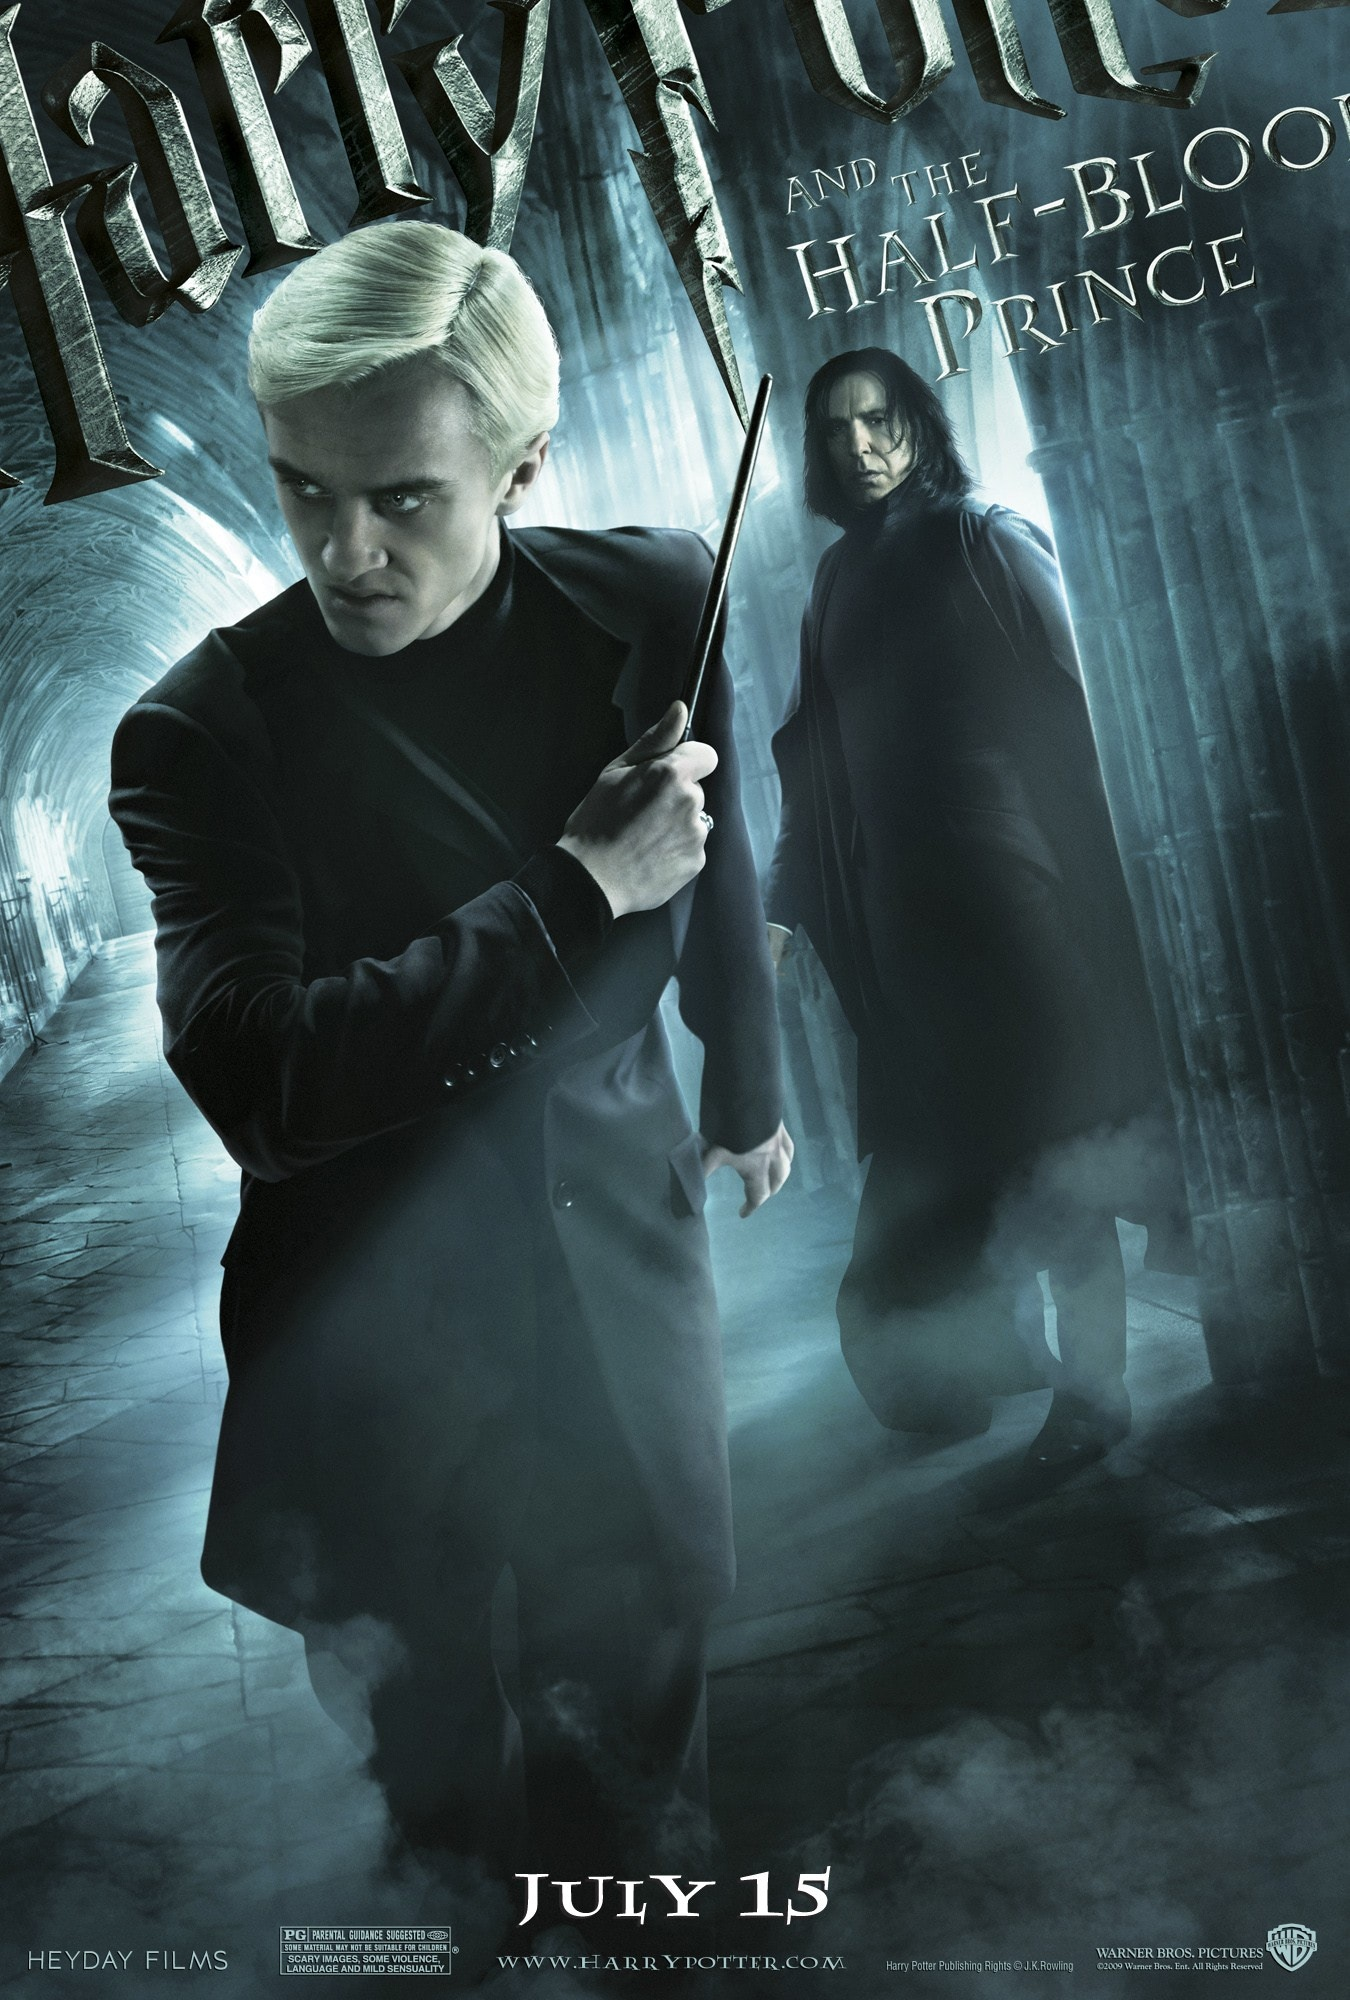 'Half-Blood Prince' Draco & Snape poster